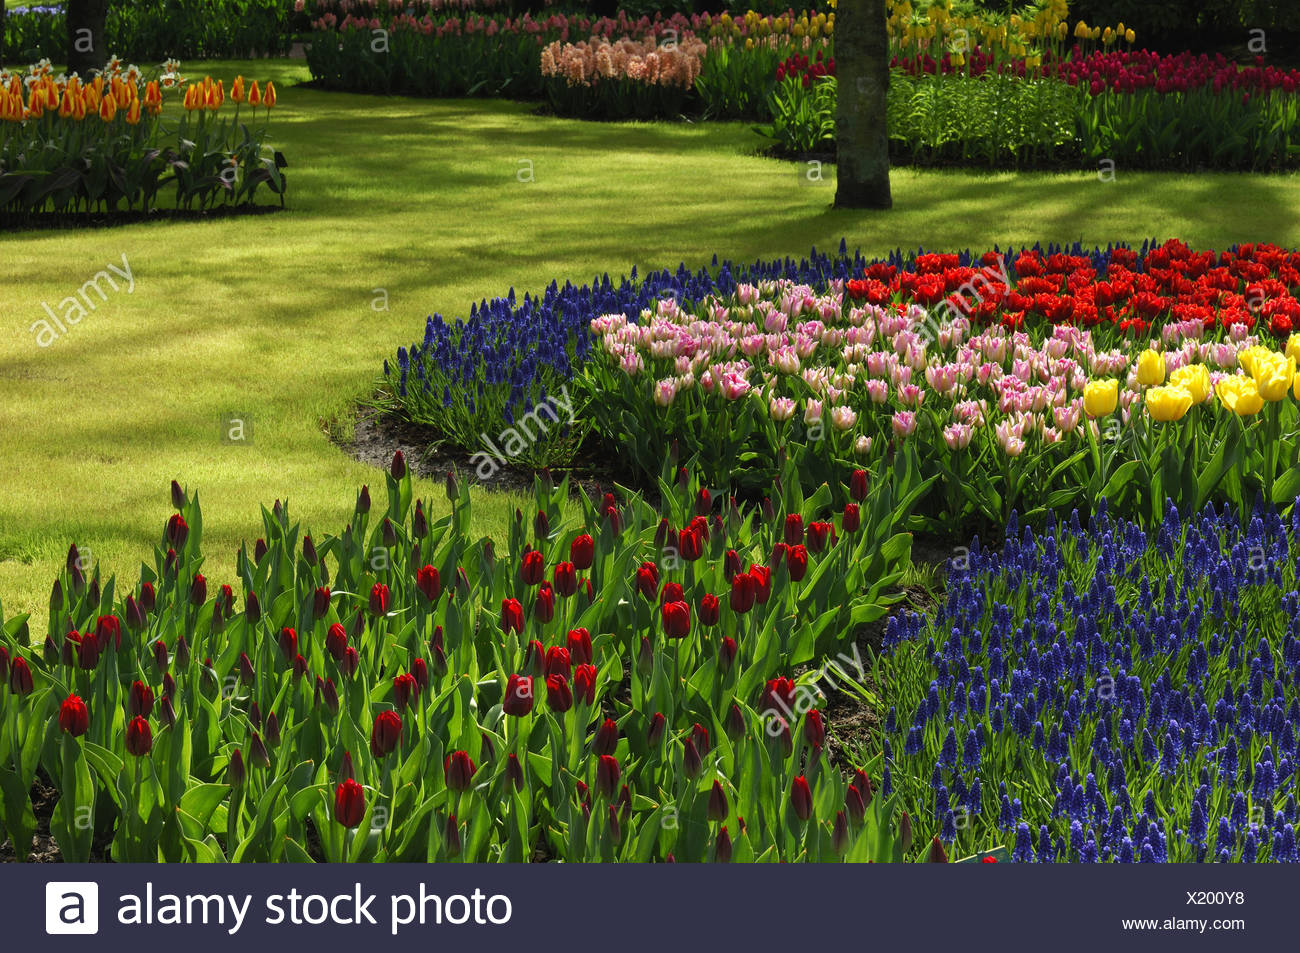 common garden tulip (Tulipa gesneriana), park with flowerbeds with different coloured tulips and grape hyacinths, Netherlands, Stock Photo